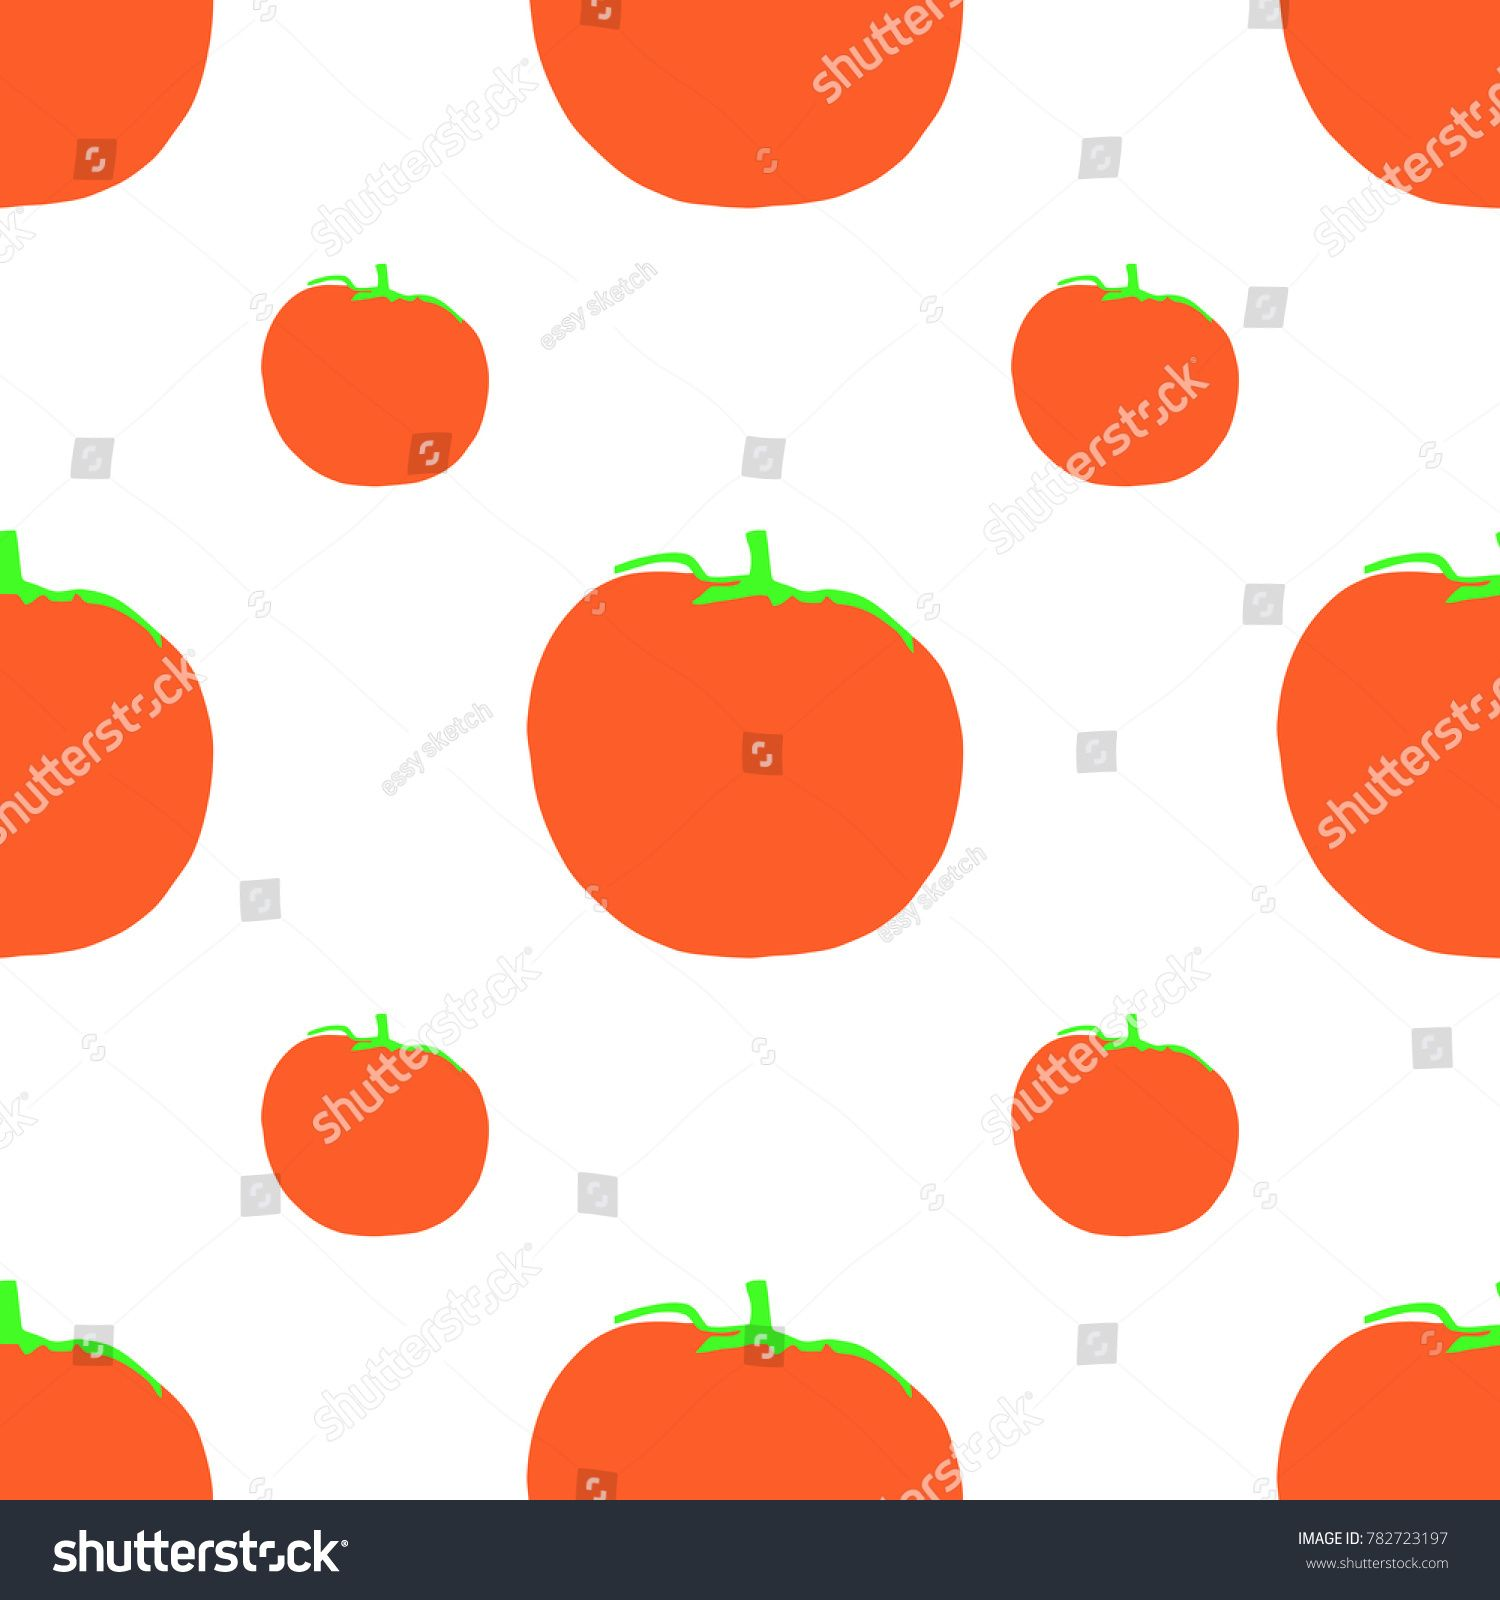 a seamless pattern of tomatoes in red orange with a green stem and a